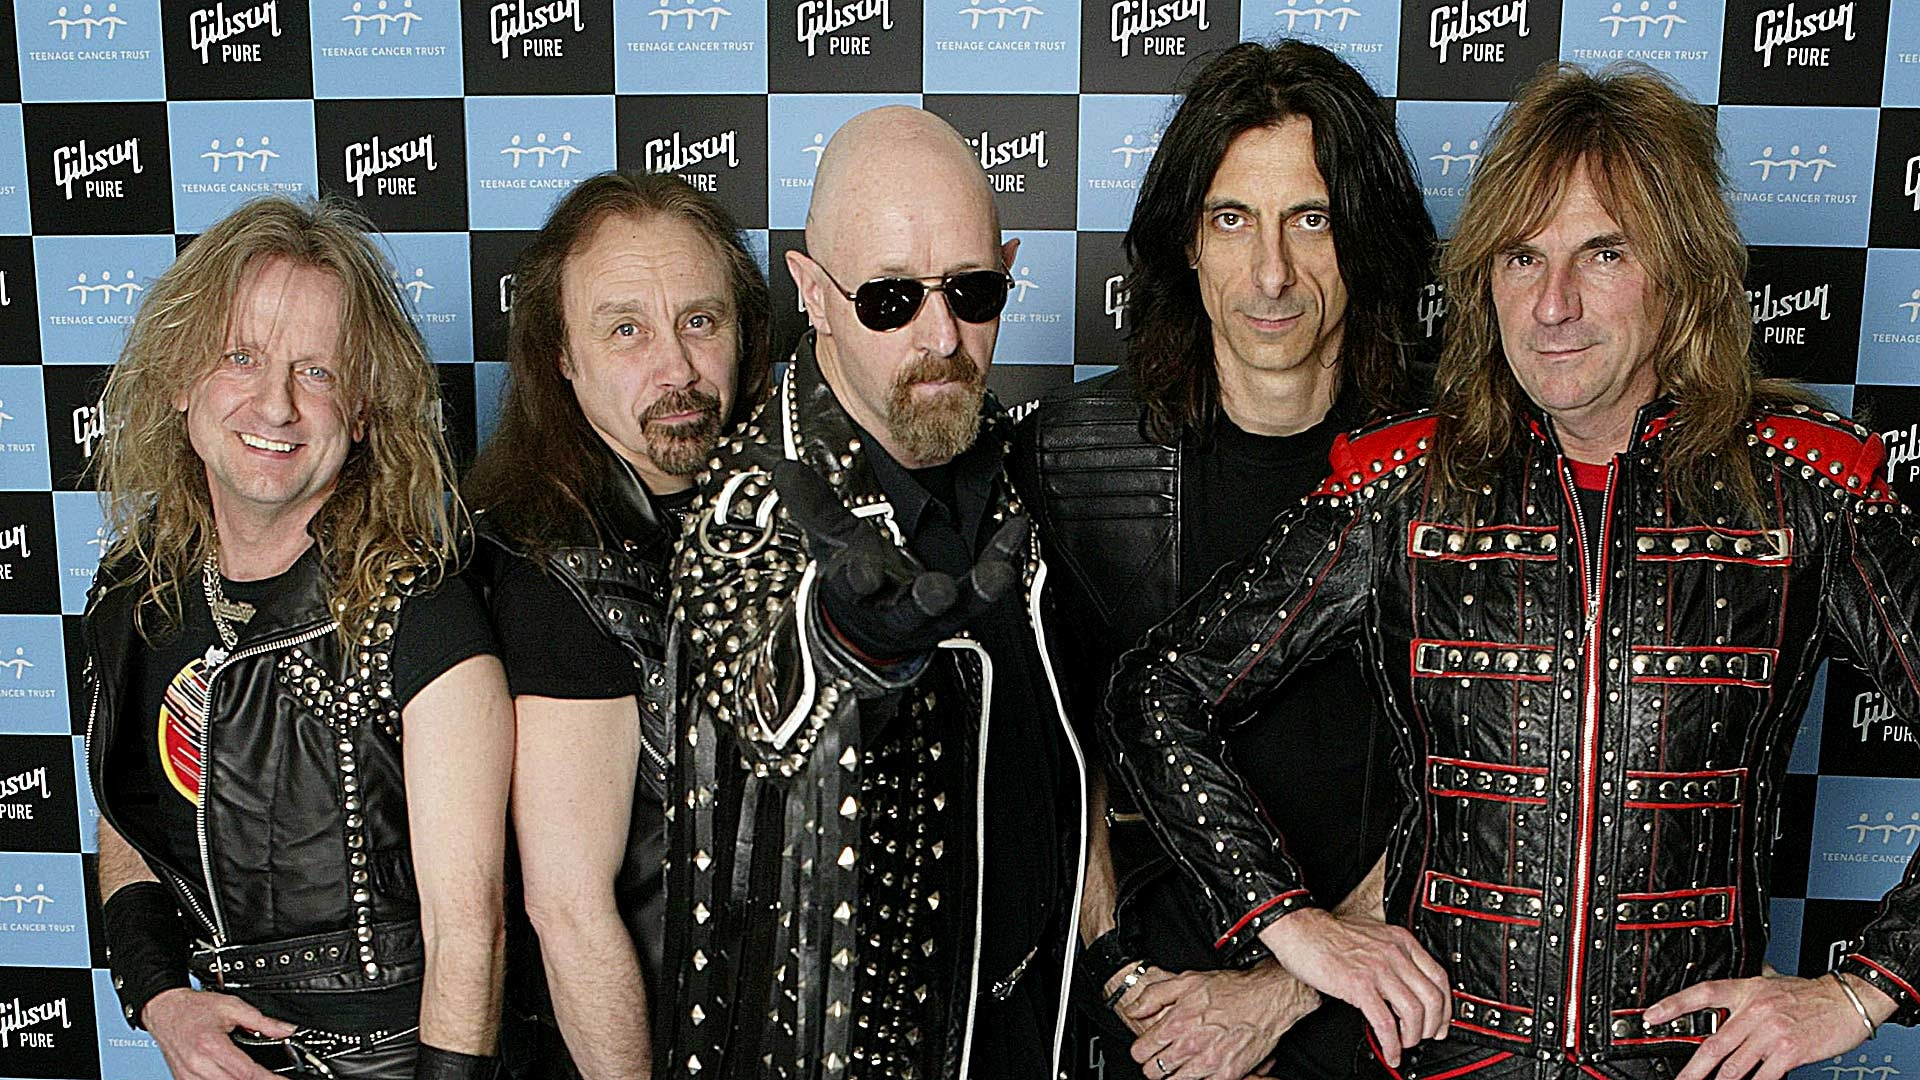 Judas Priest - British Steel: Classic Al